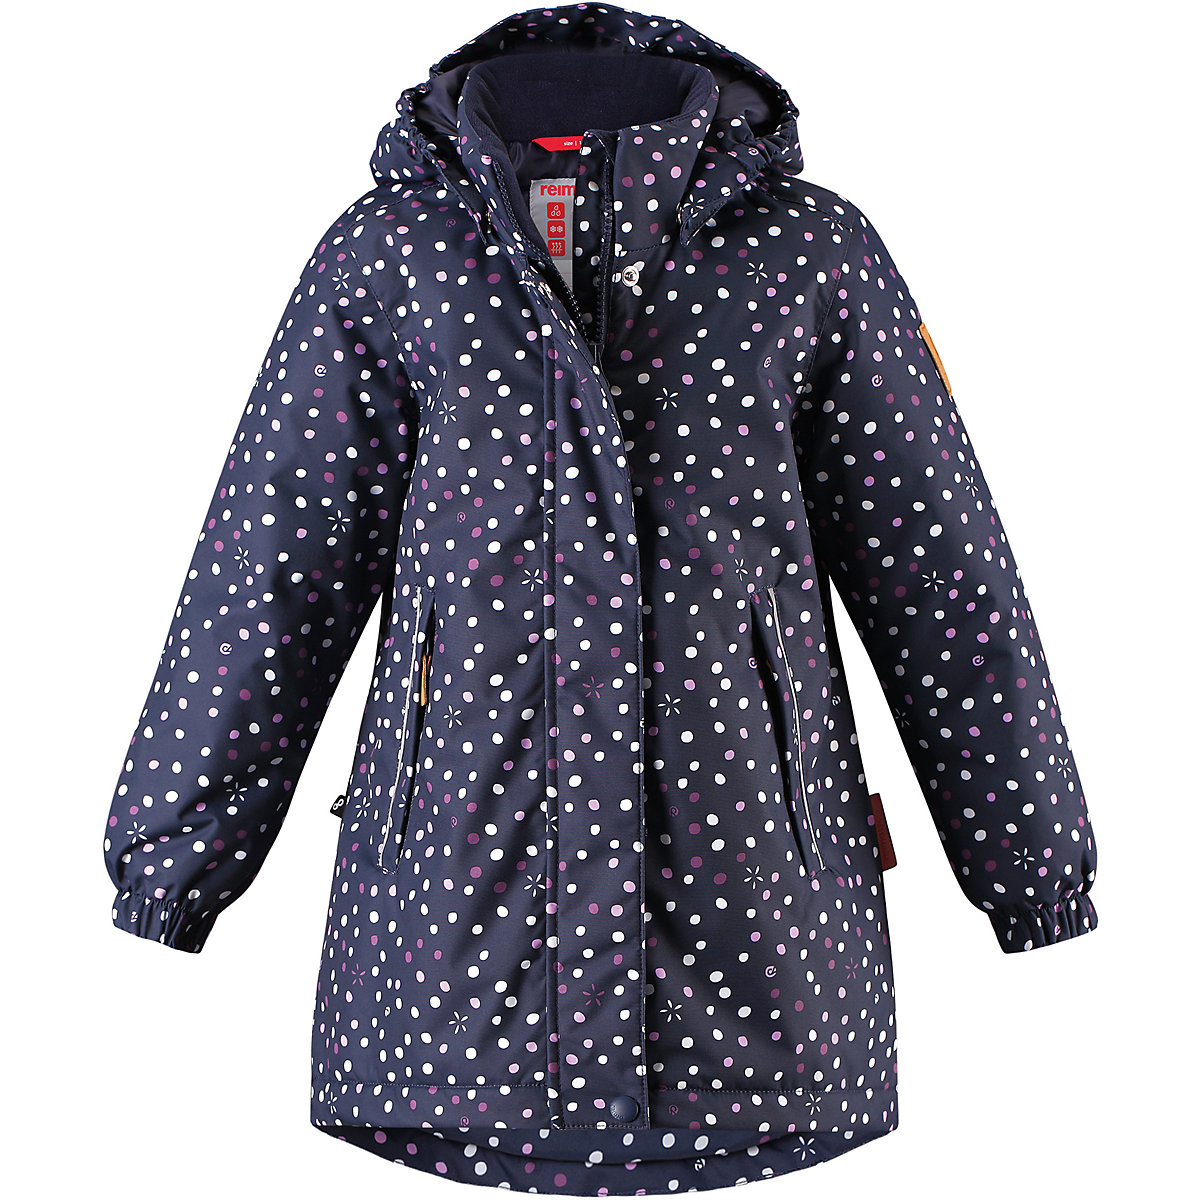 REIMA Jackets & Coats 8665257 for girls baby clothing winter warm boy girl jacket Polyester icebear 2018 fashion winter jacket men s brand clothing jacket high quality thick warm men winter coat down jacket 17md811